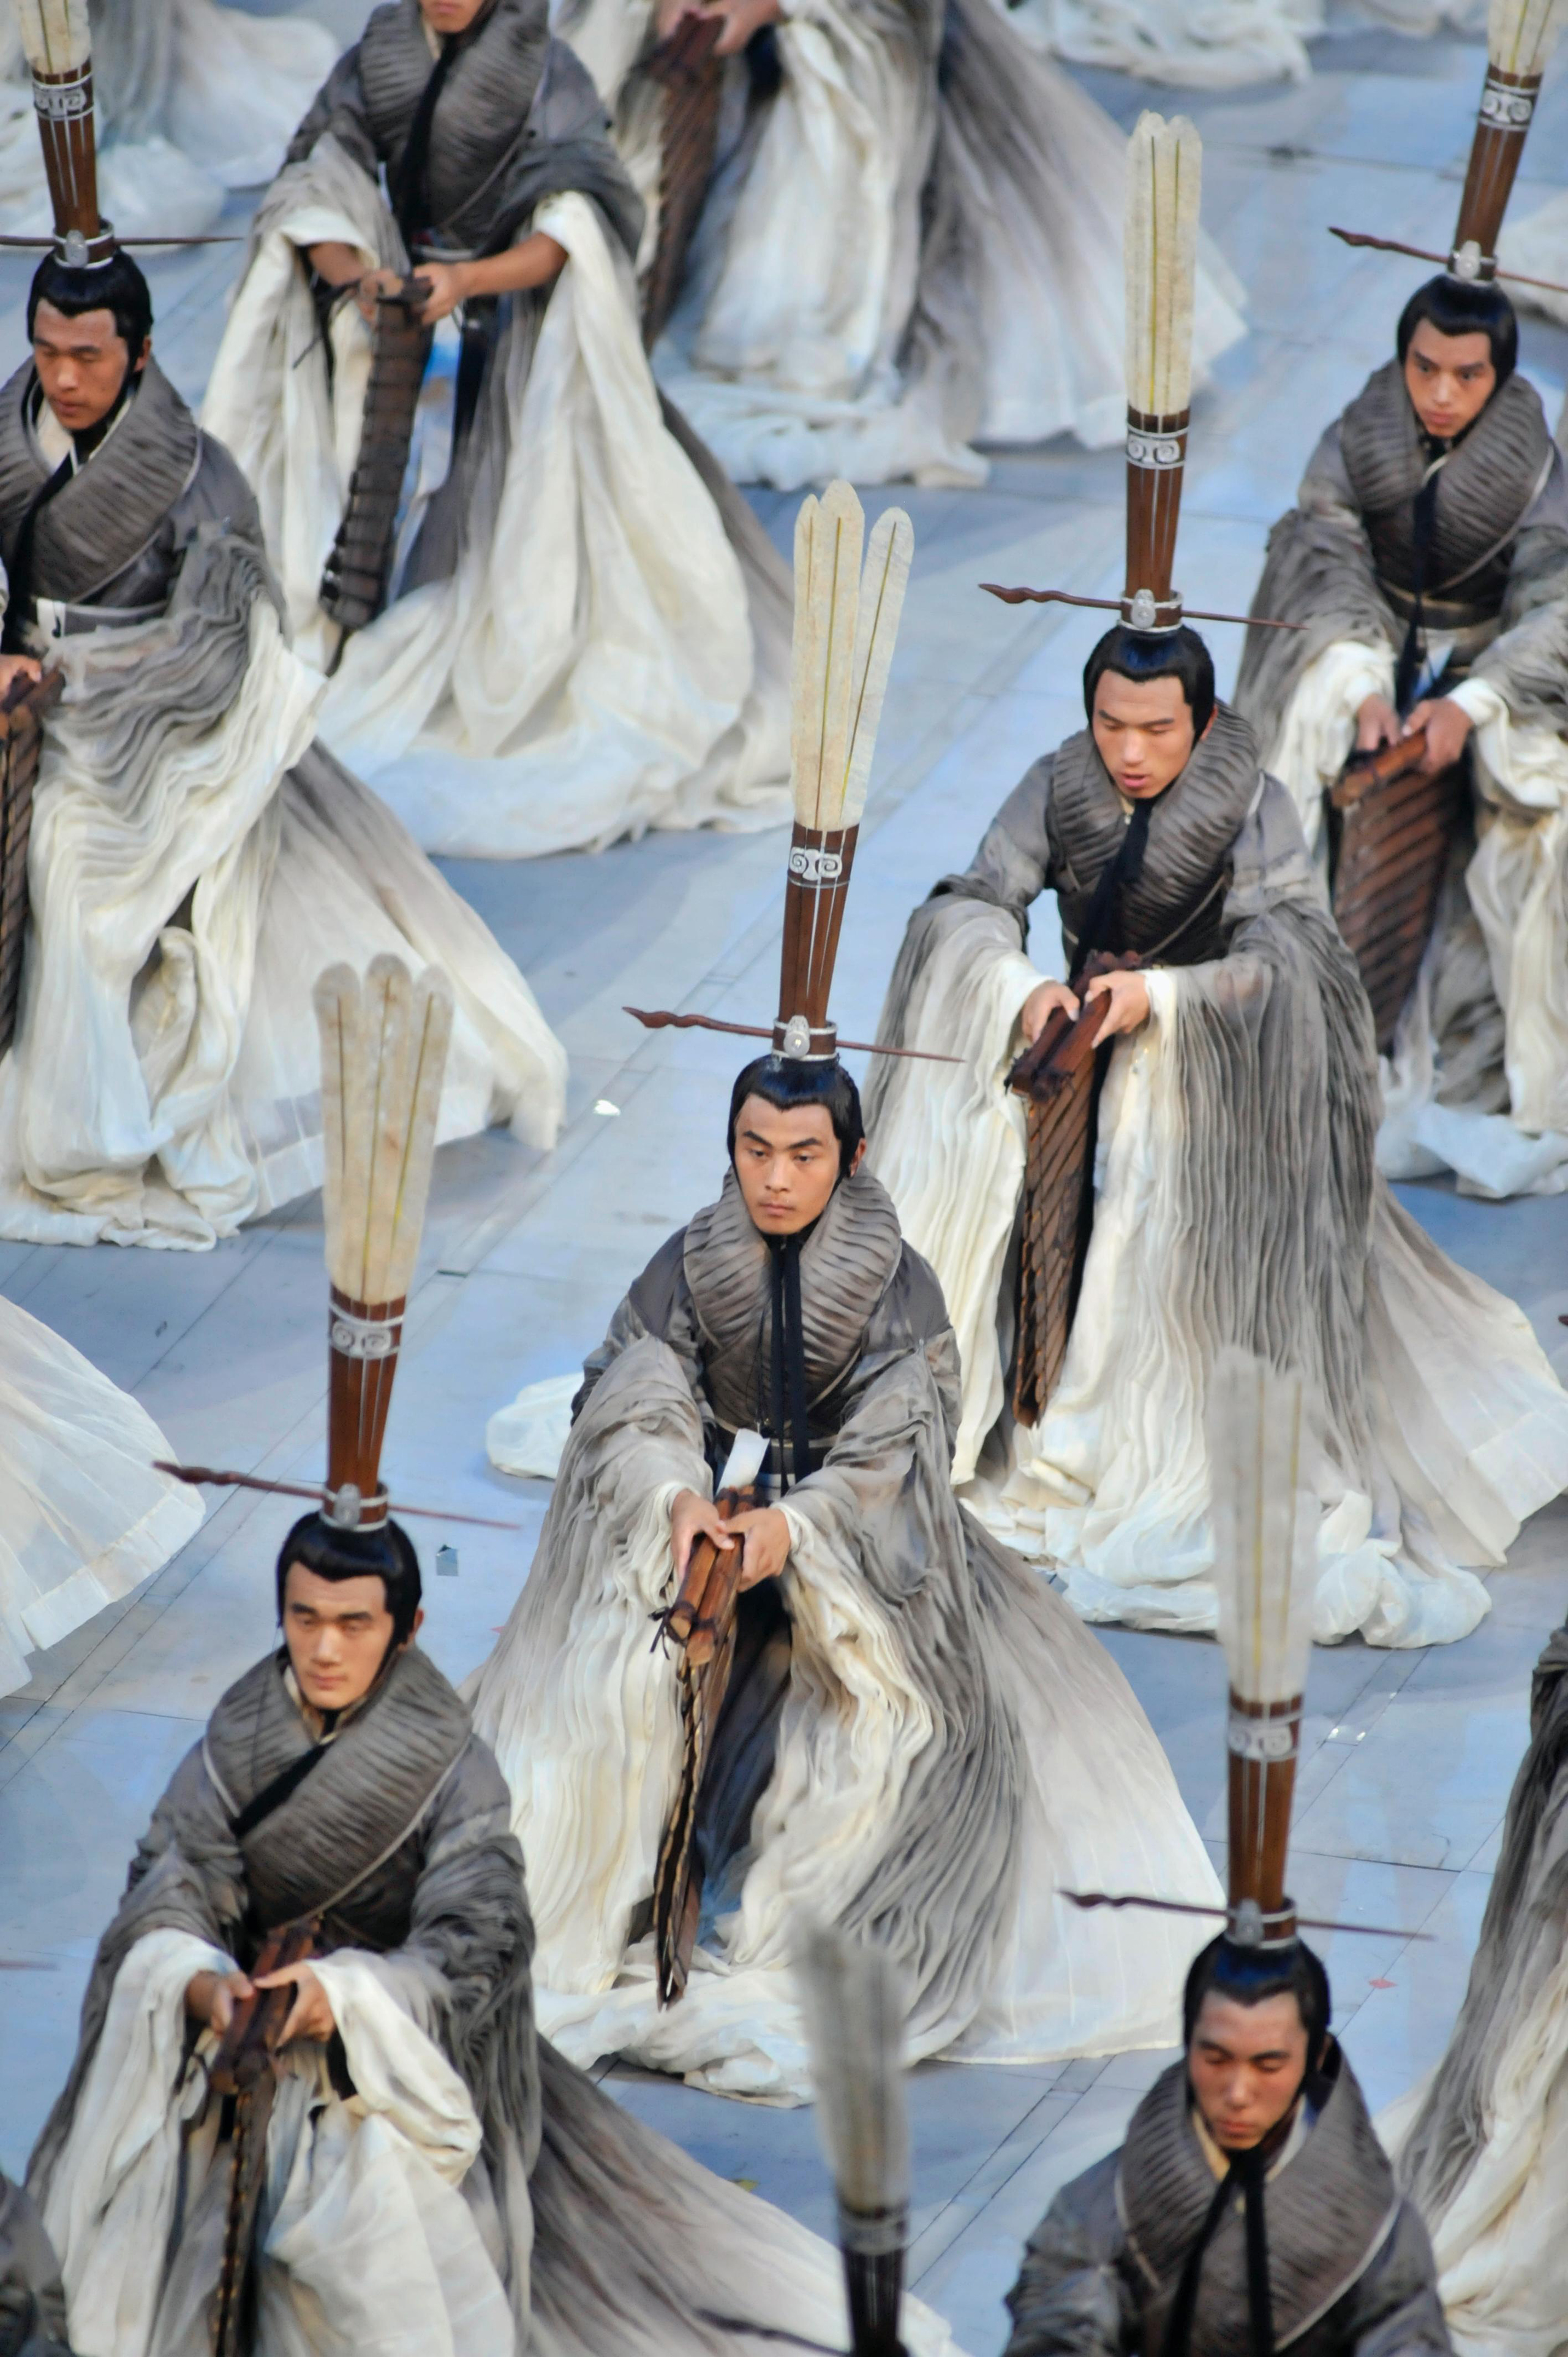 Beijing, 2008Widely regarded to be the most spectacular opening ceremony, Beijing's performance was directed by filmmaker Zhang Yimou and focused on ancient Chinese culture and creativity.